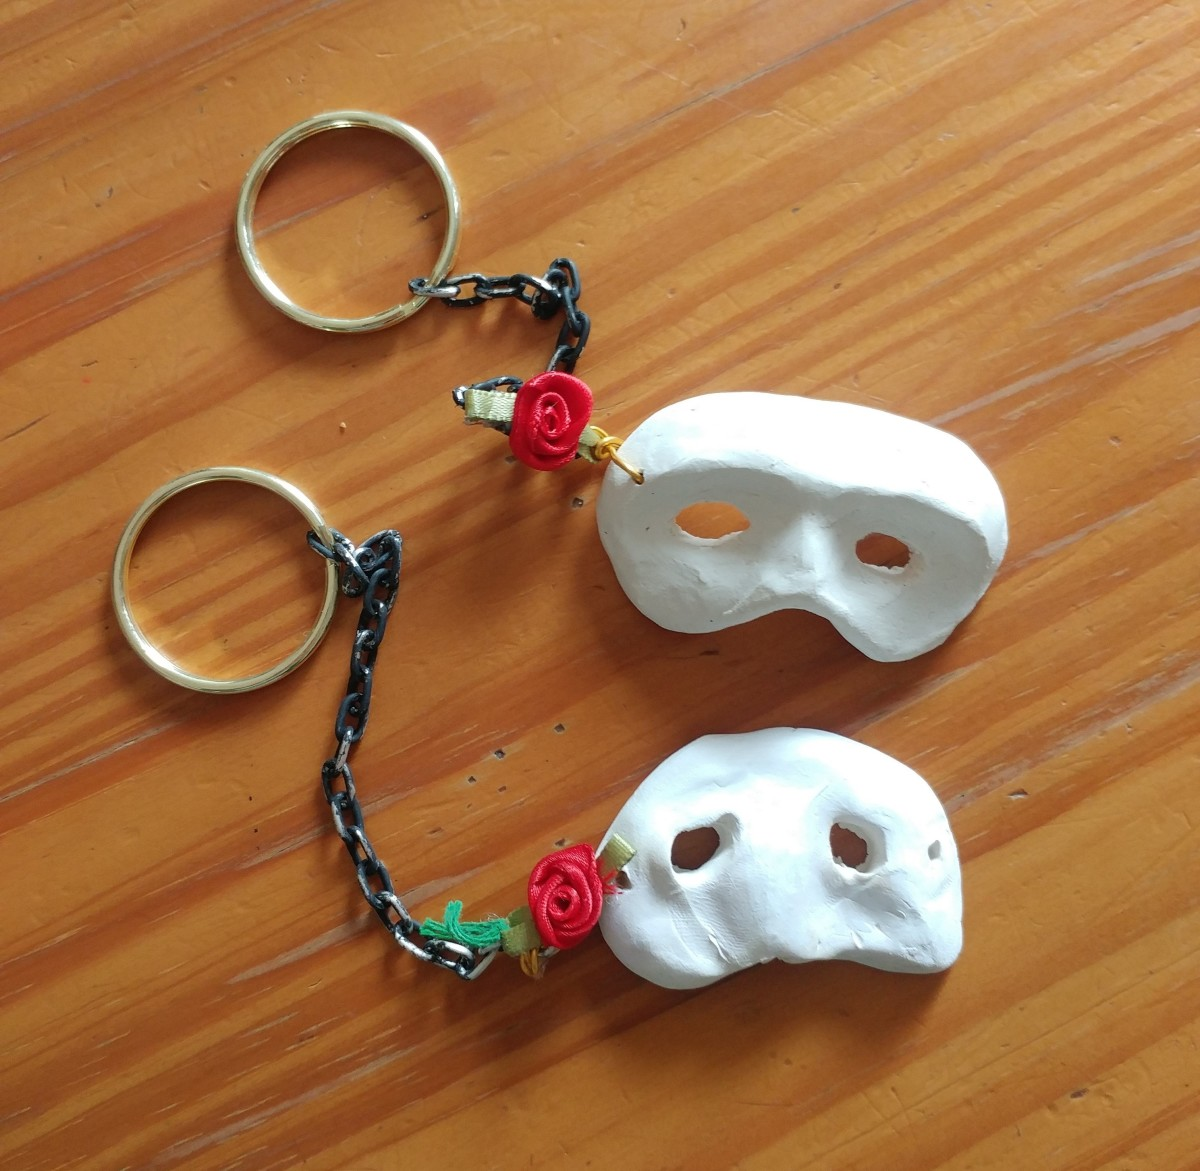 Enjoy this project! Is it the perfect little item to keep for a Phantom fan.